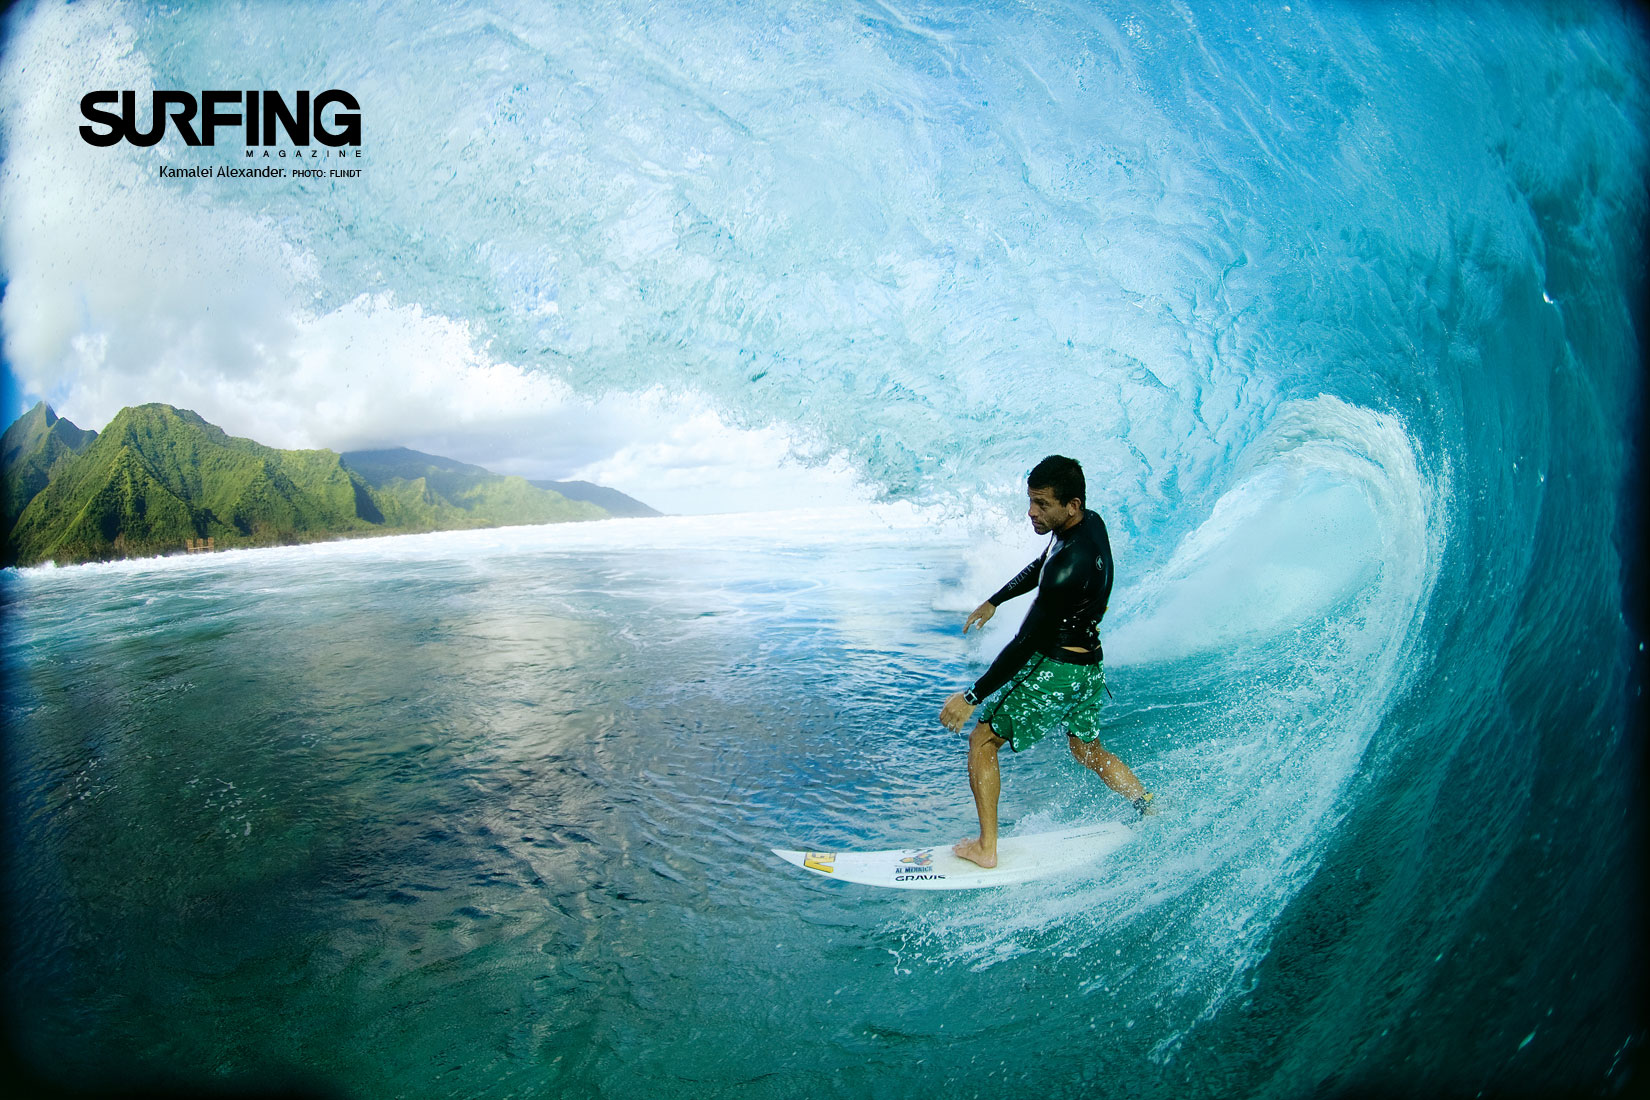 Surfing Magazine January 2011 Issue Wallpapers Pictures 1650x1100